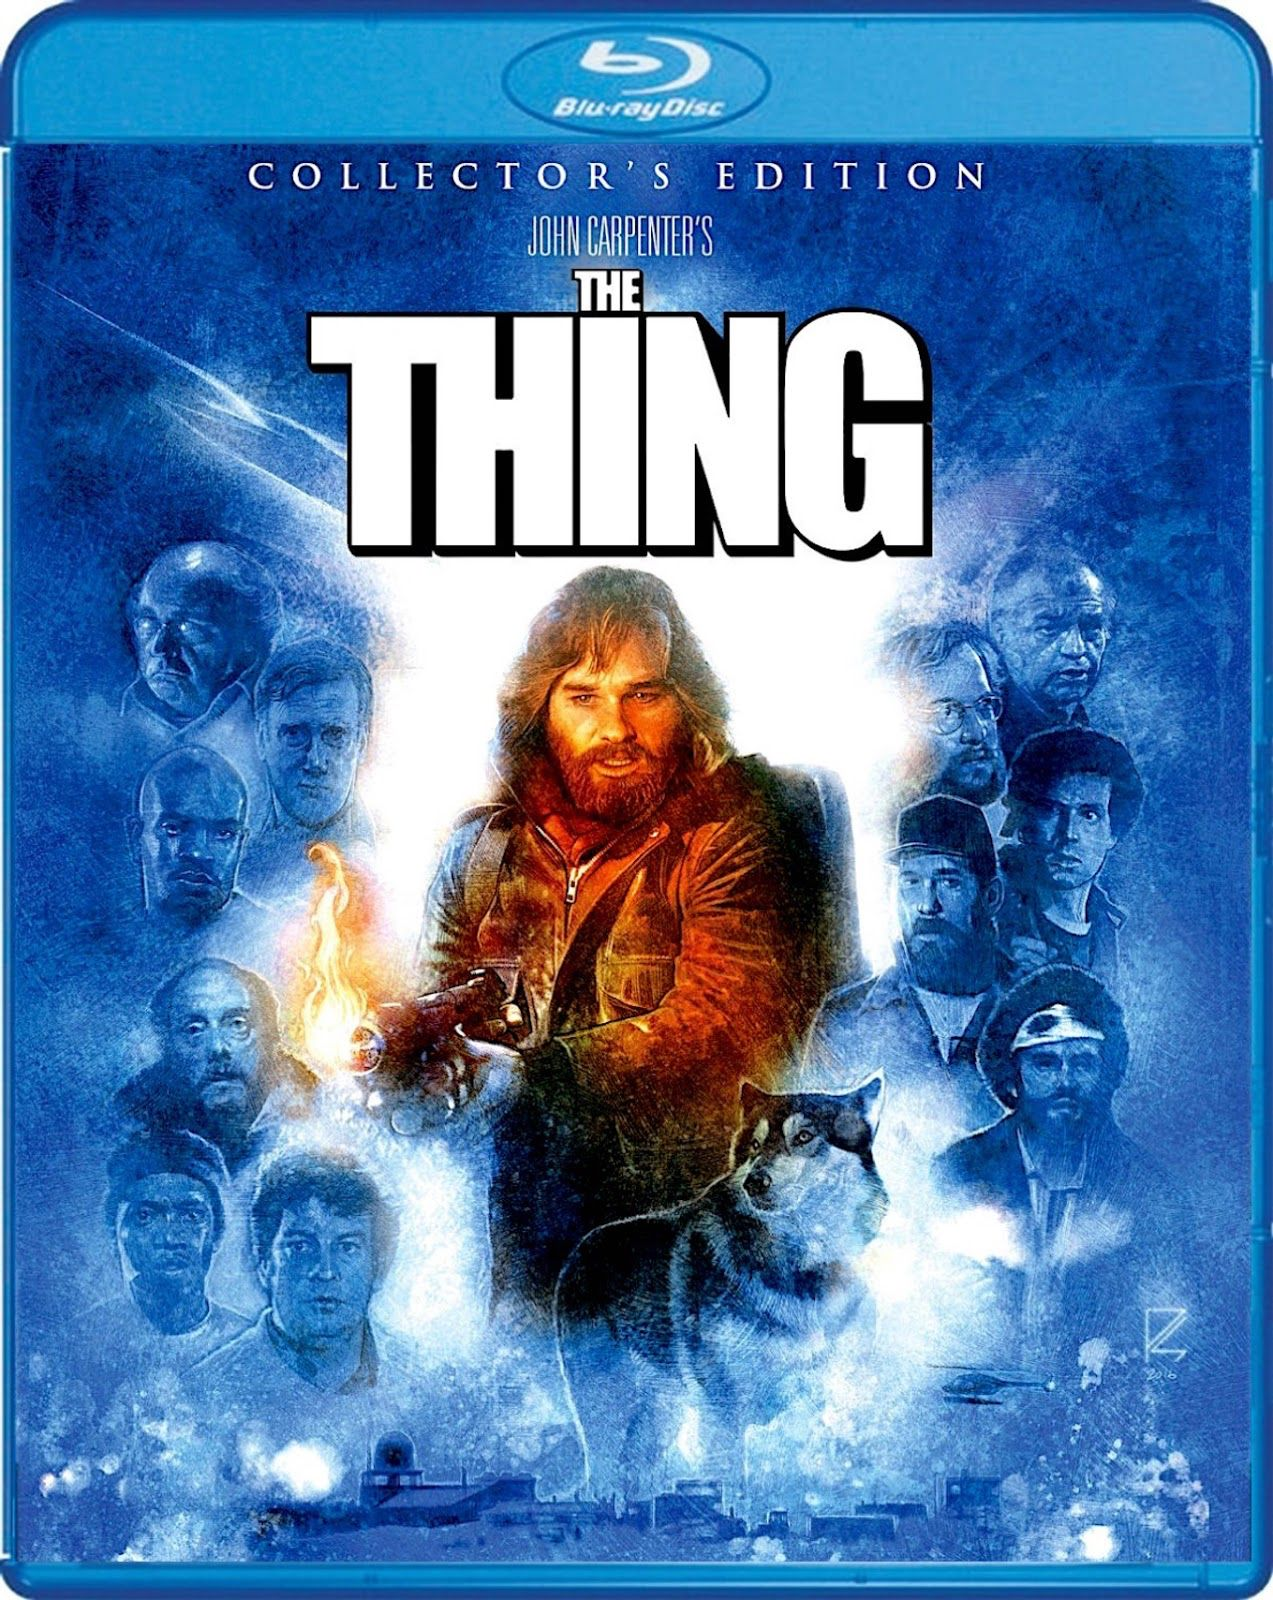 THE THING COLLECTOR'S EDITION SCREAM FACTORY BLURAY